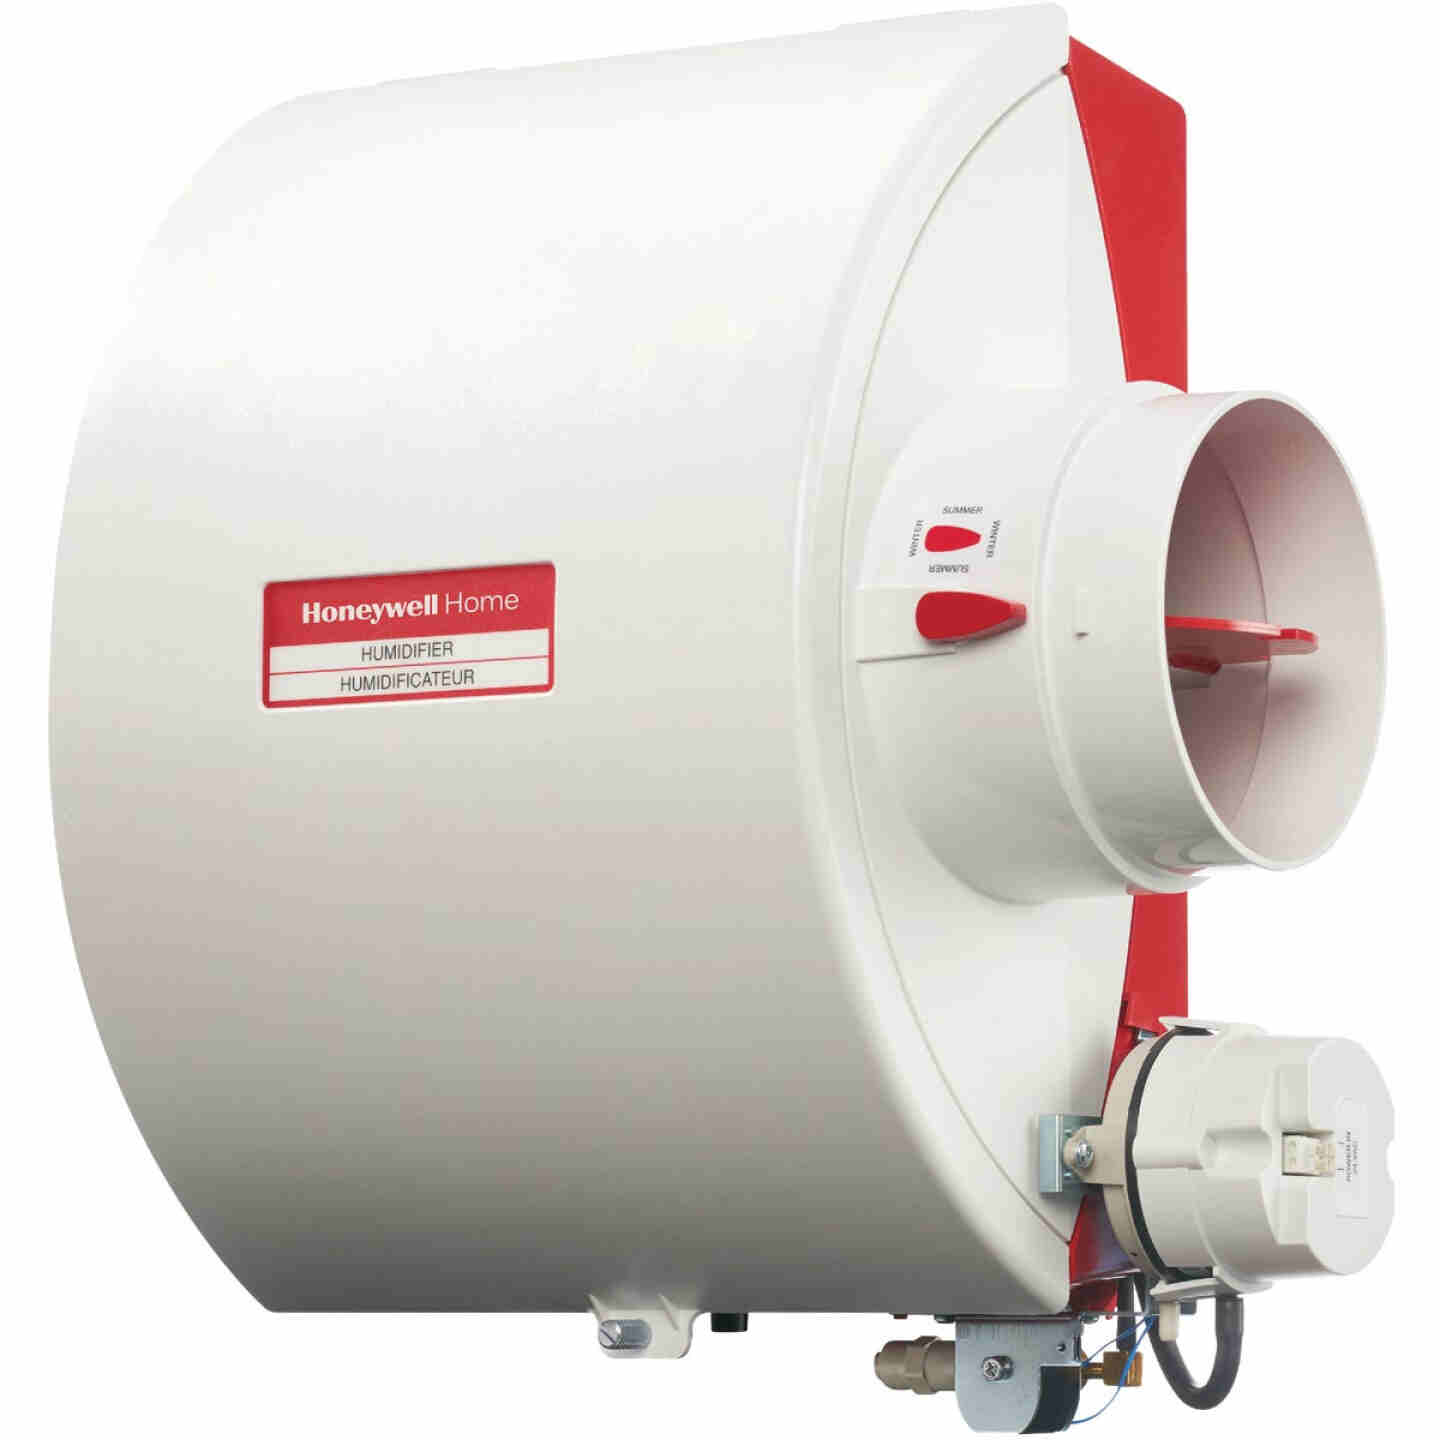 Honeywell Home 12.15 In. W. x 15.68 In. H. x 10.9 In. D. Whole House Flow-Thru Bypass Furnace Humidifier Image 1